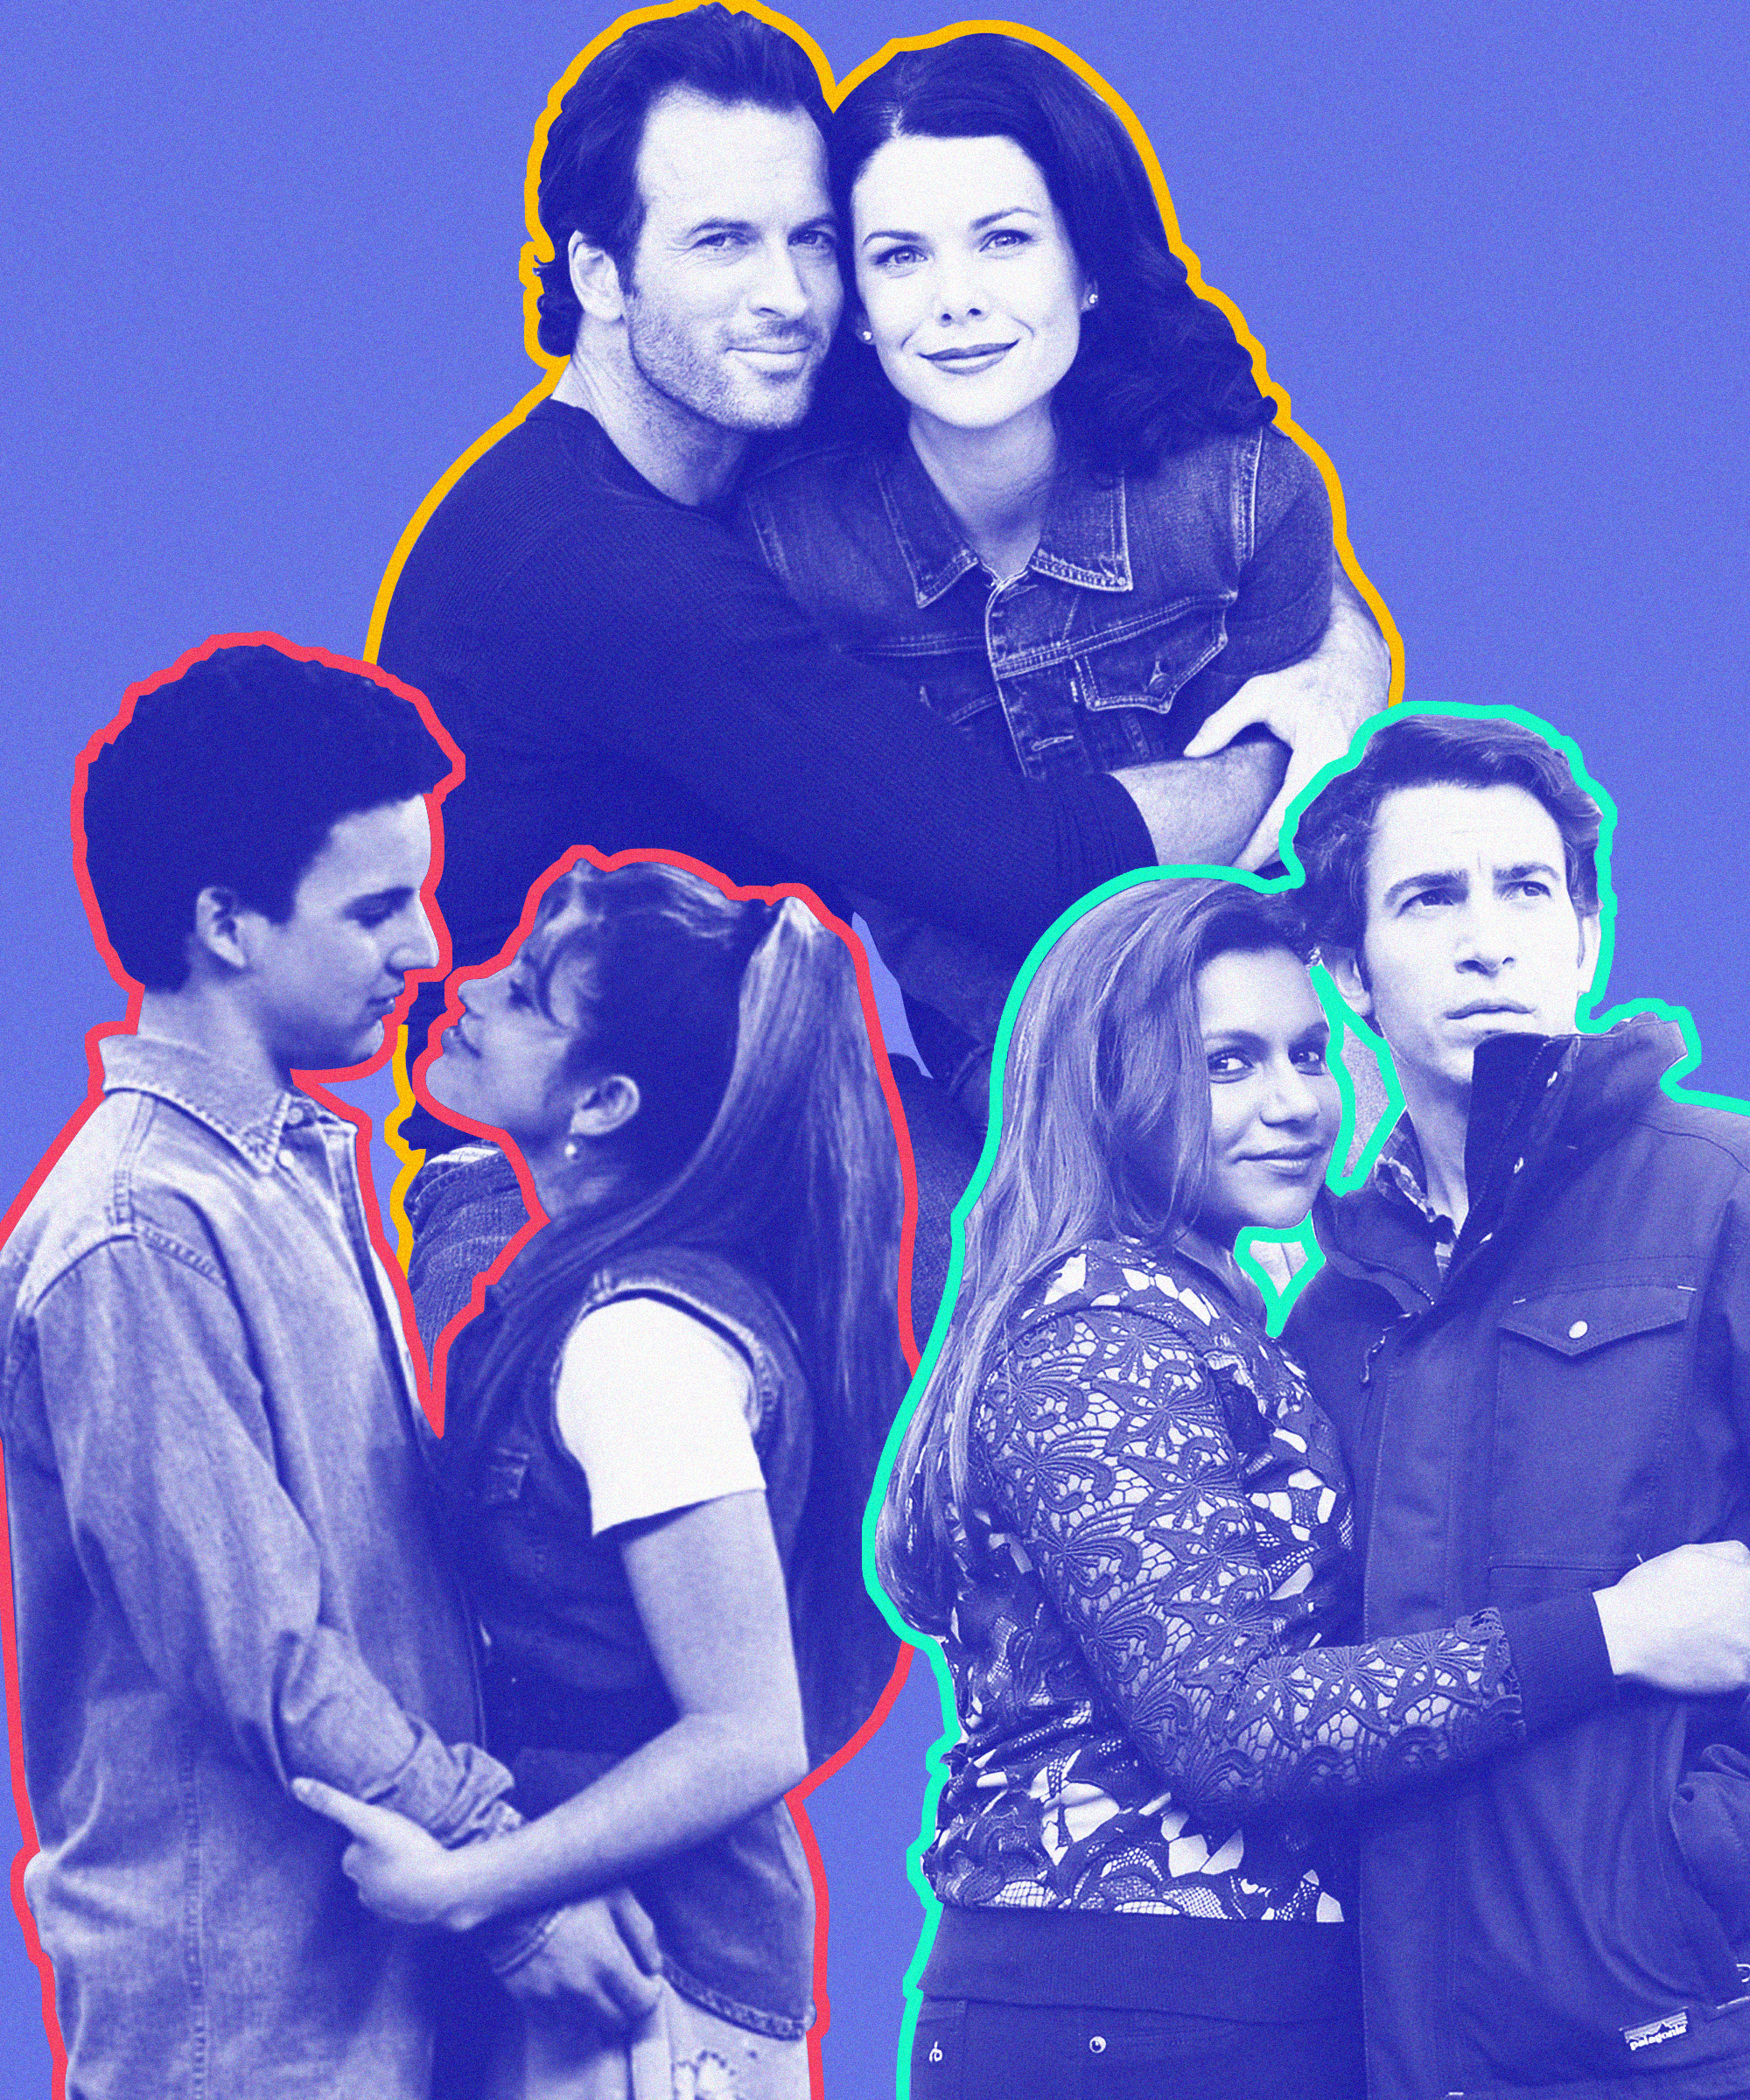 Best TV Couples Romance Shows Dramatic Hot Love Stories